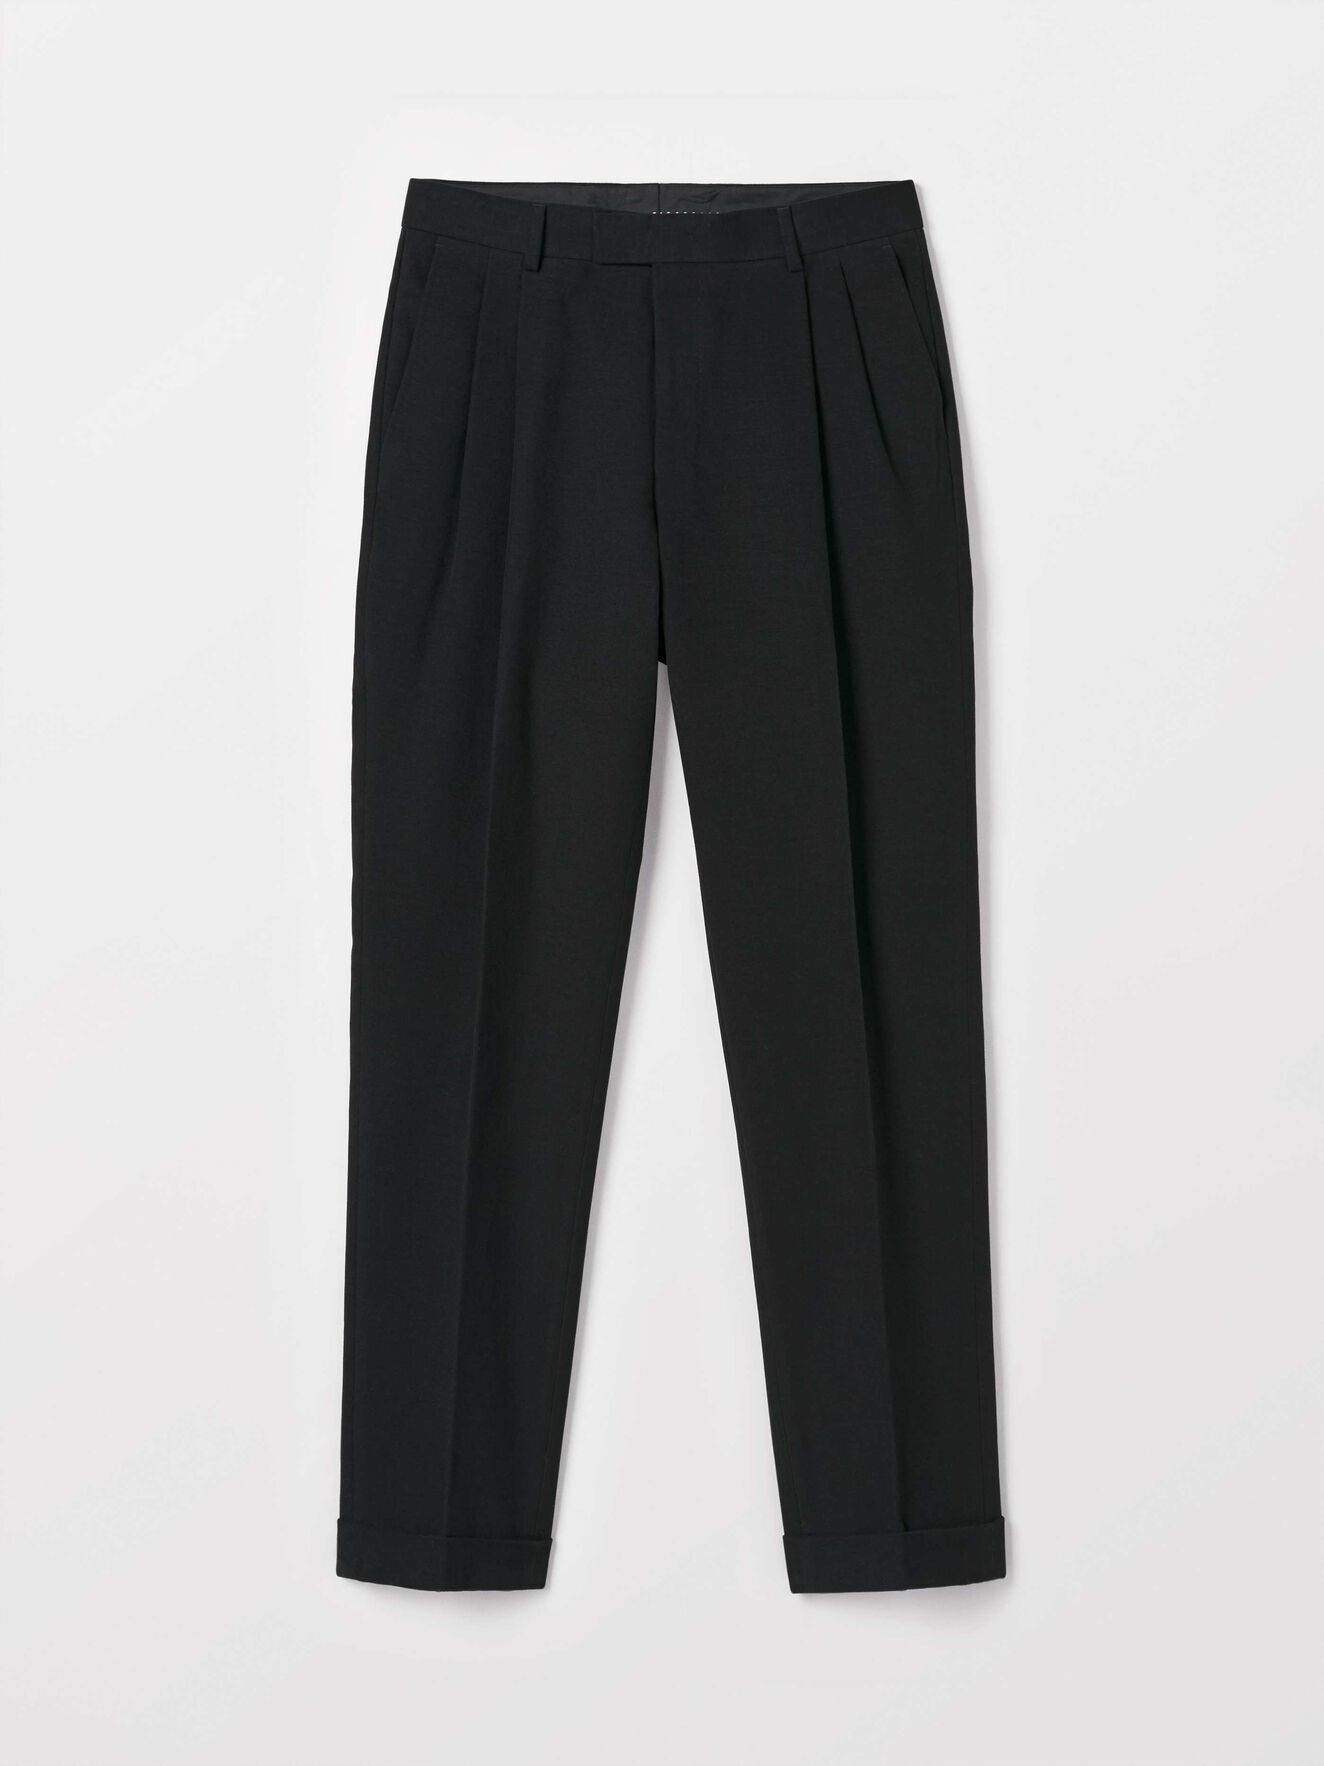 Pantalon Tivolo in Black from Tiger of Sweden